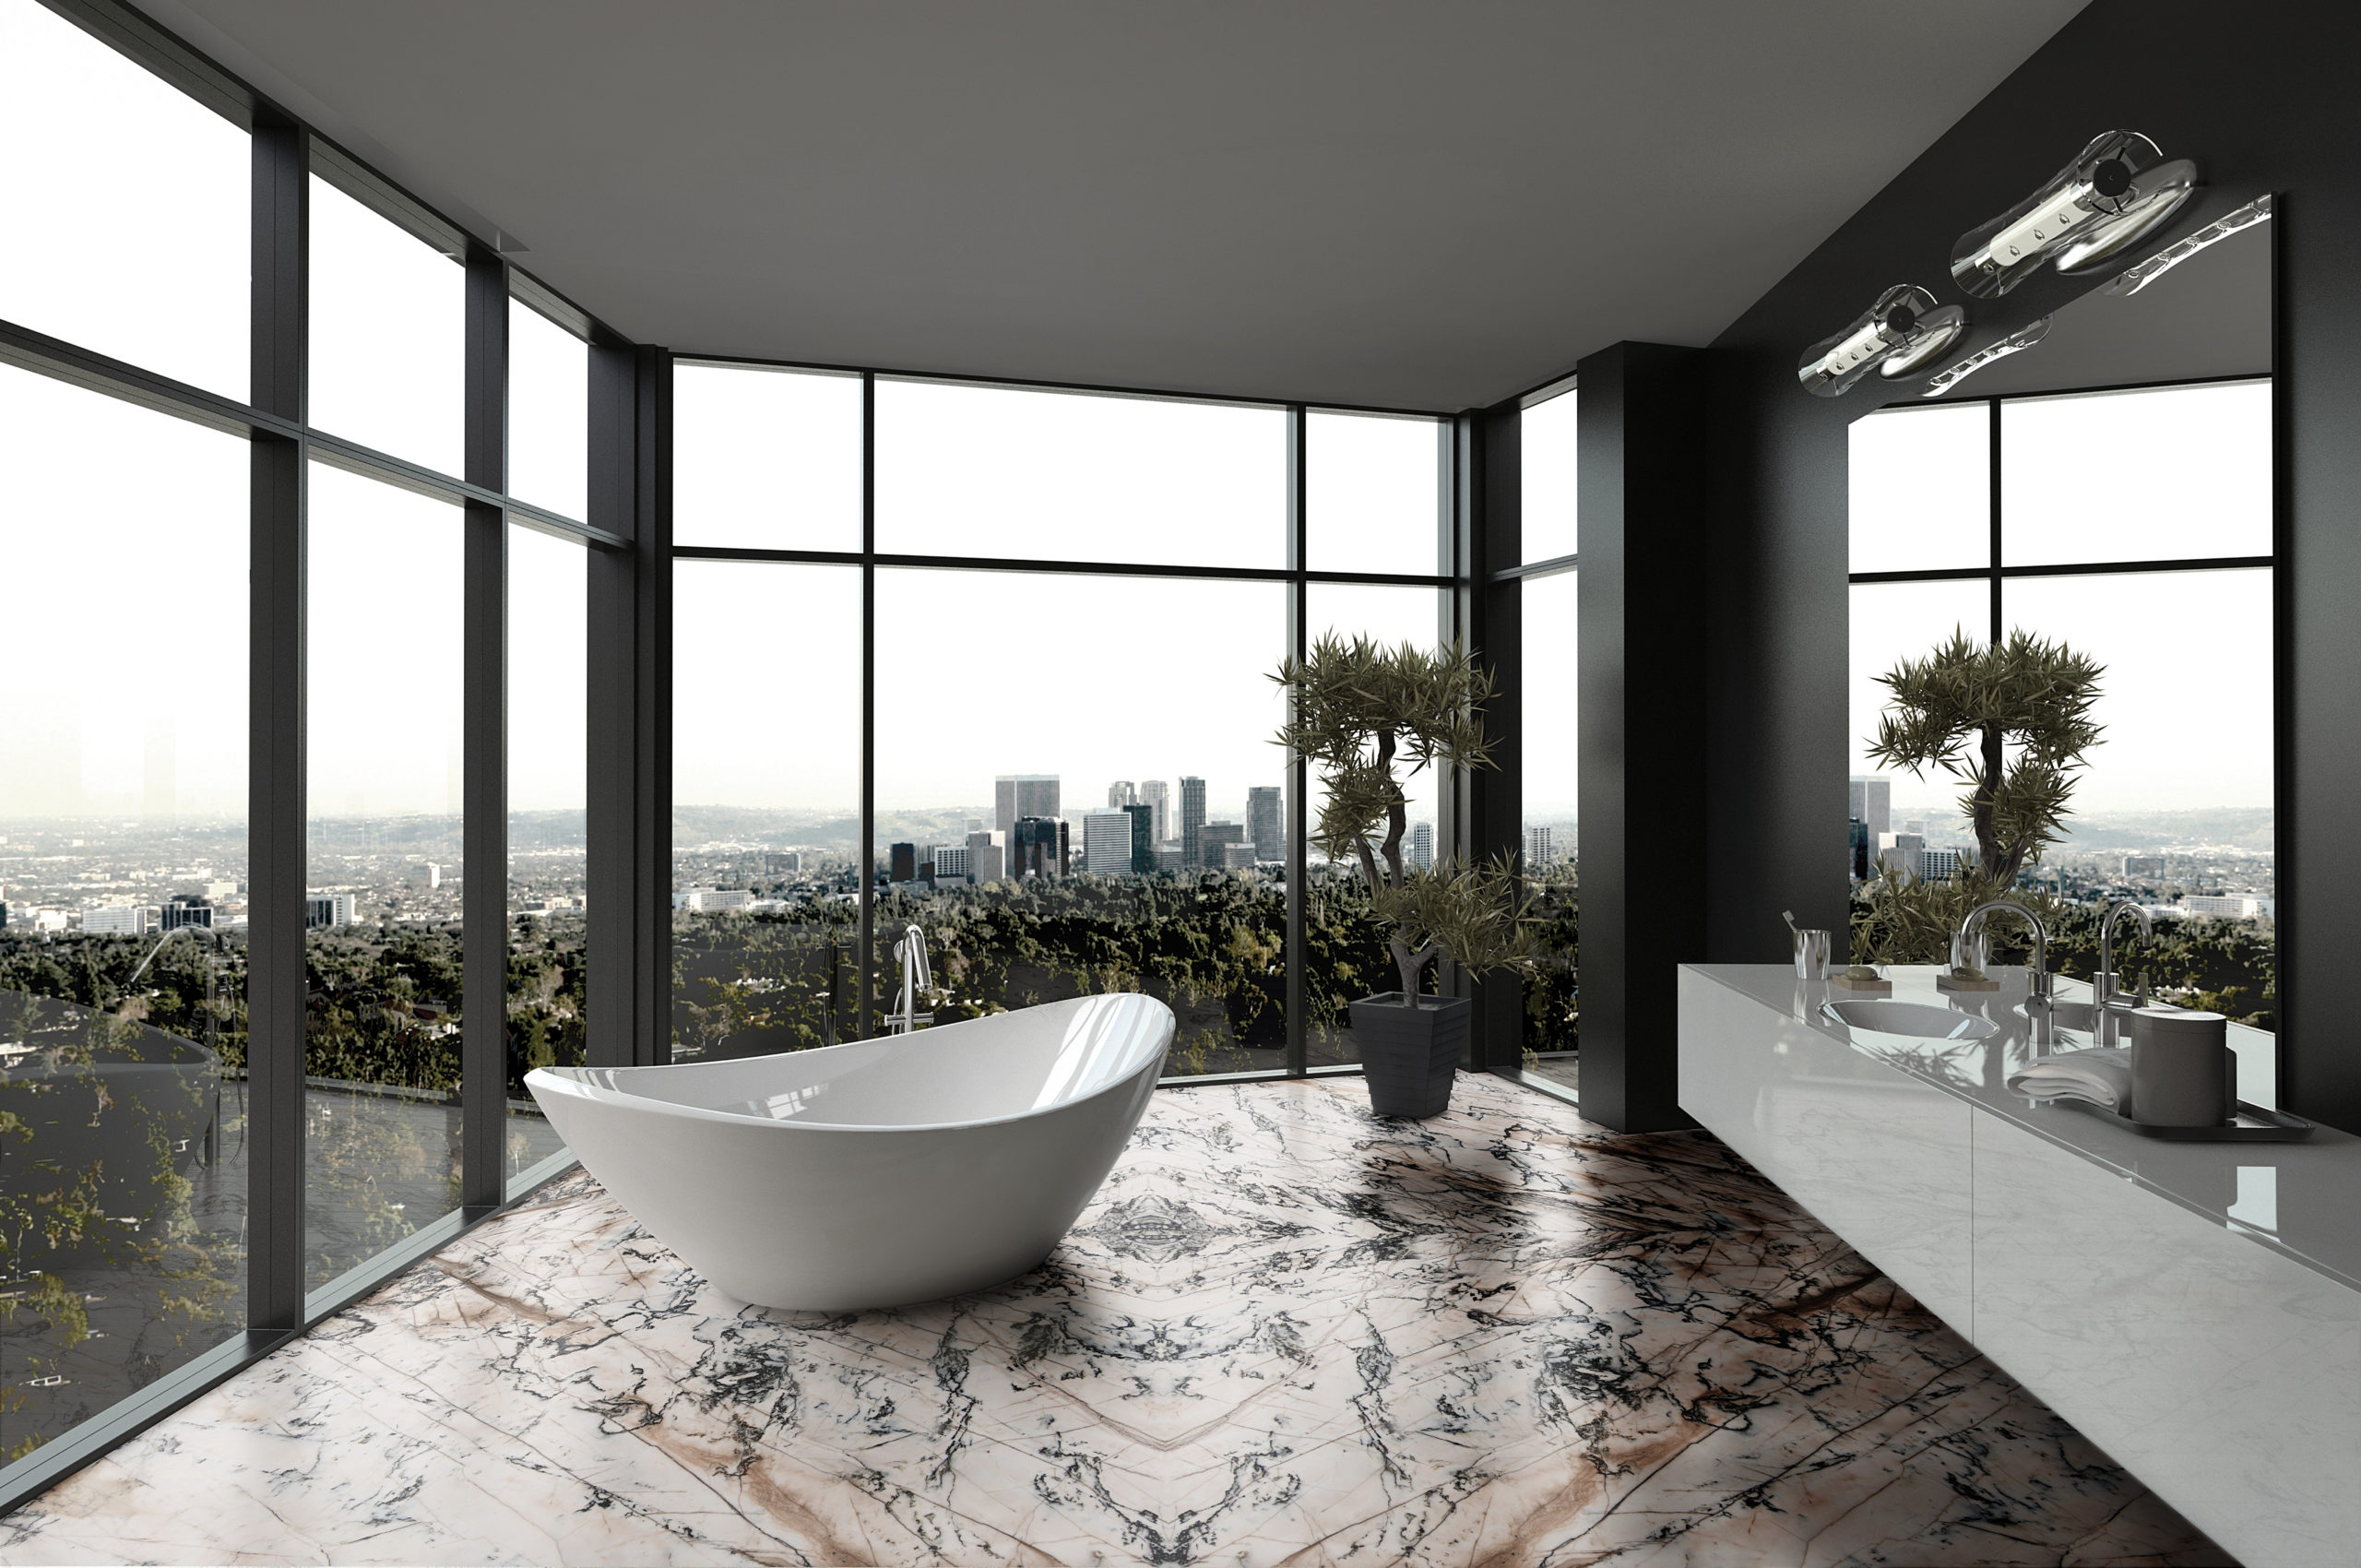 Porcelain tub with Cristallo Venato Quartzite flooring